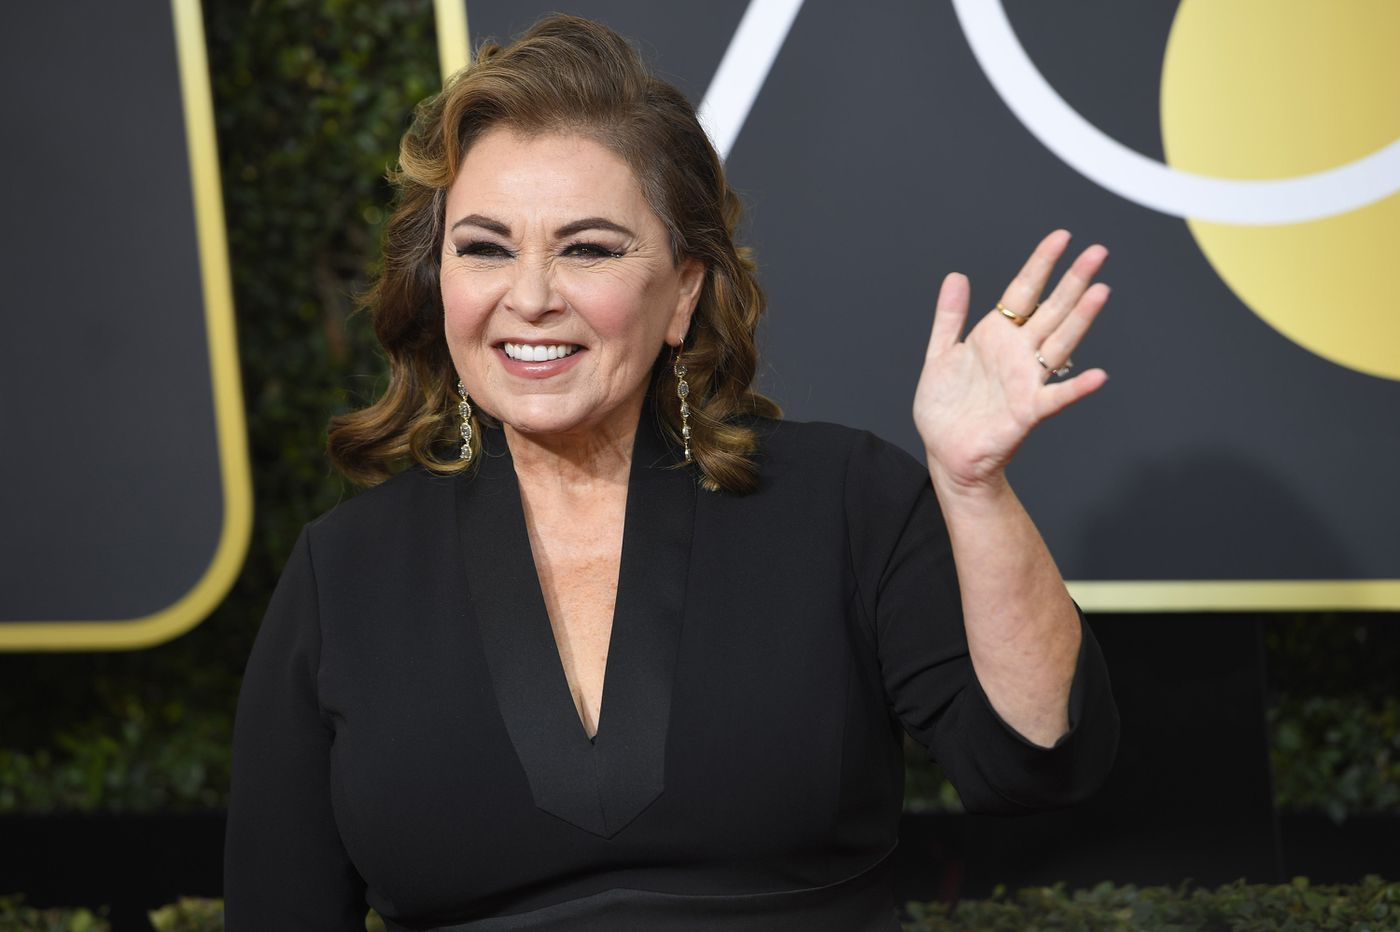 Roseanne Barr addresses racist tweet in first interview since her show's cancellation